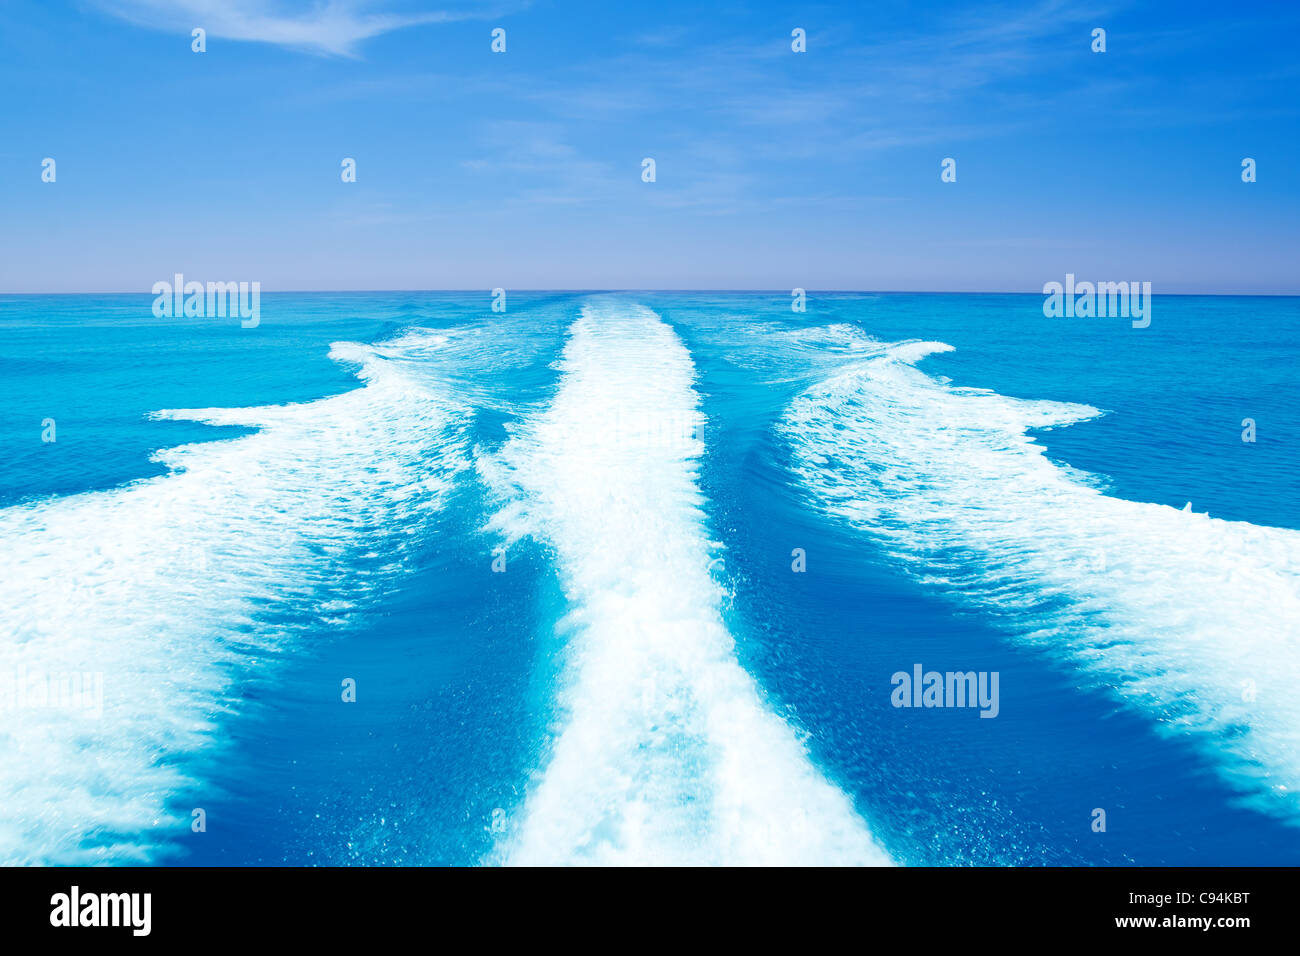 Boat wake prop wash on turquoise sea in sunny day Stock Photo